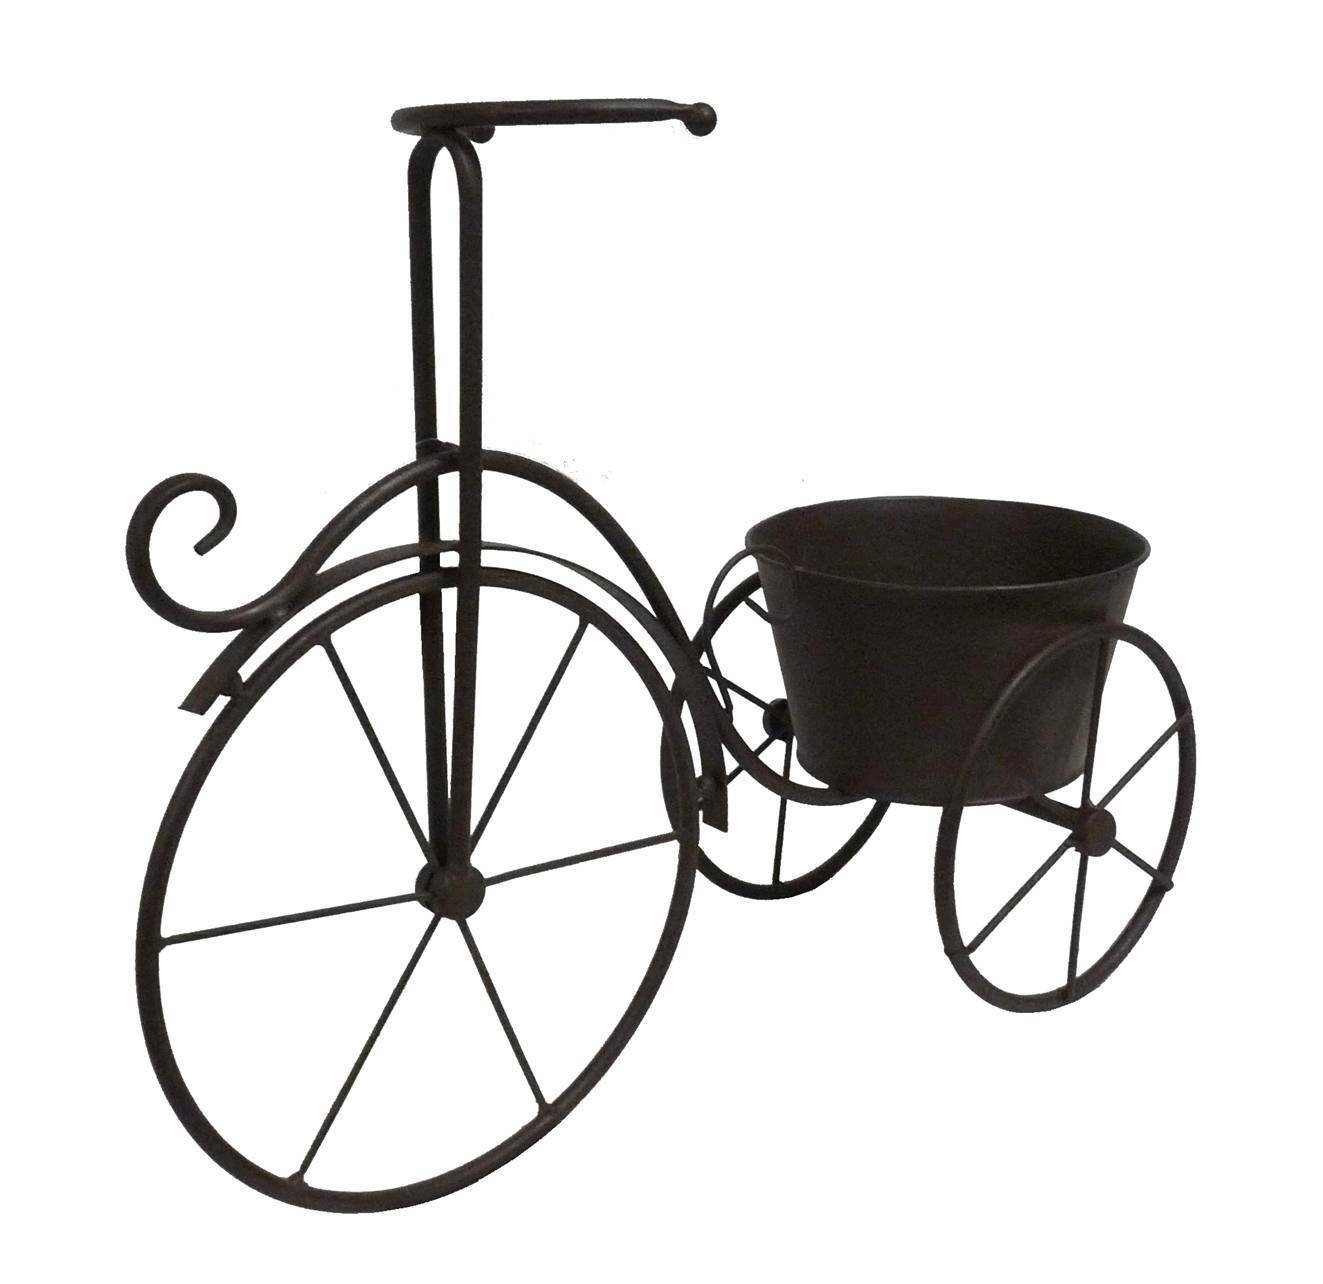 Velo porte plante bac jardini re pot de jardin en metal for Porte jardin metal